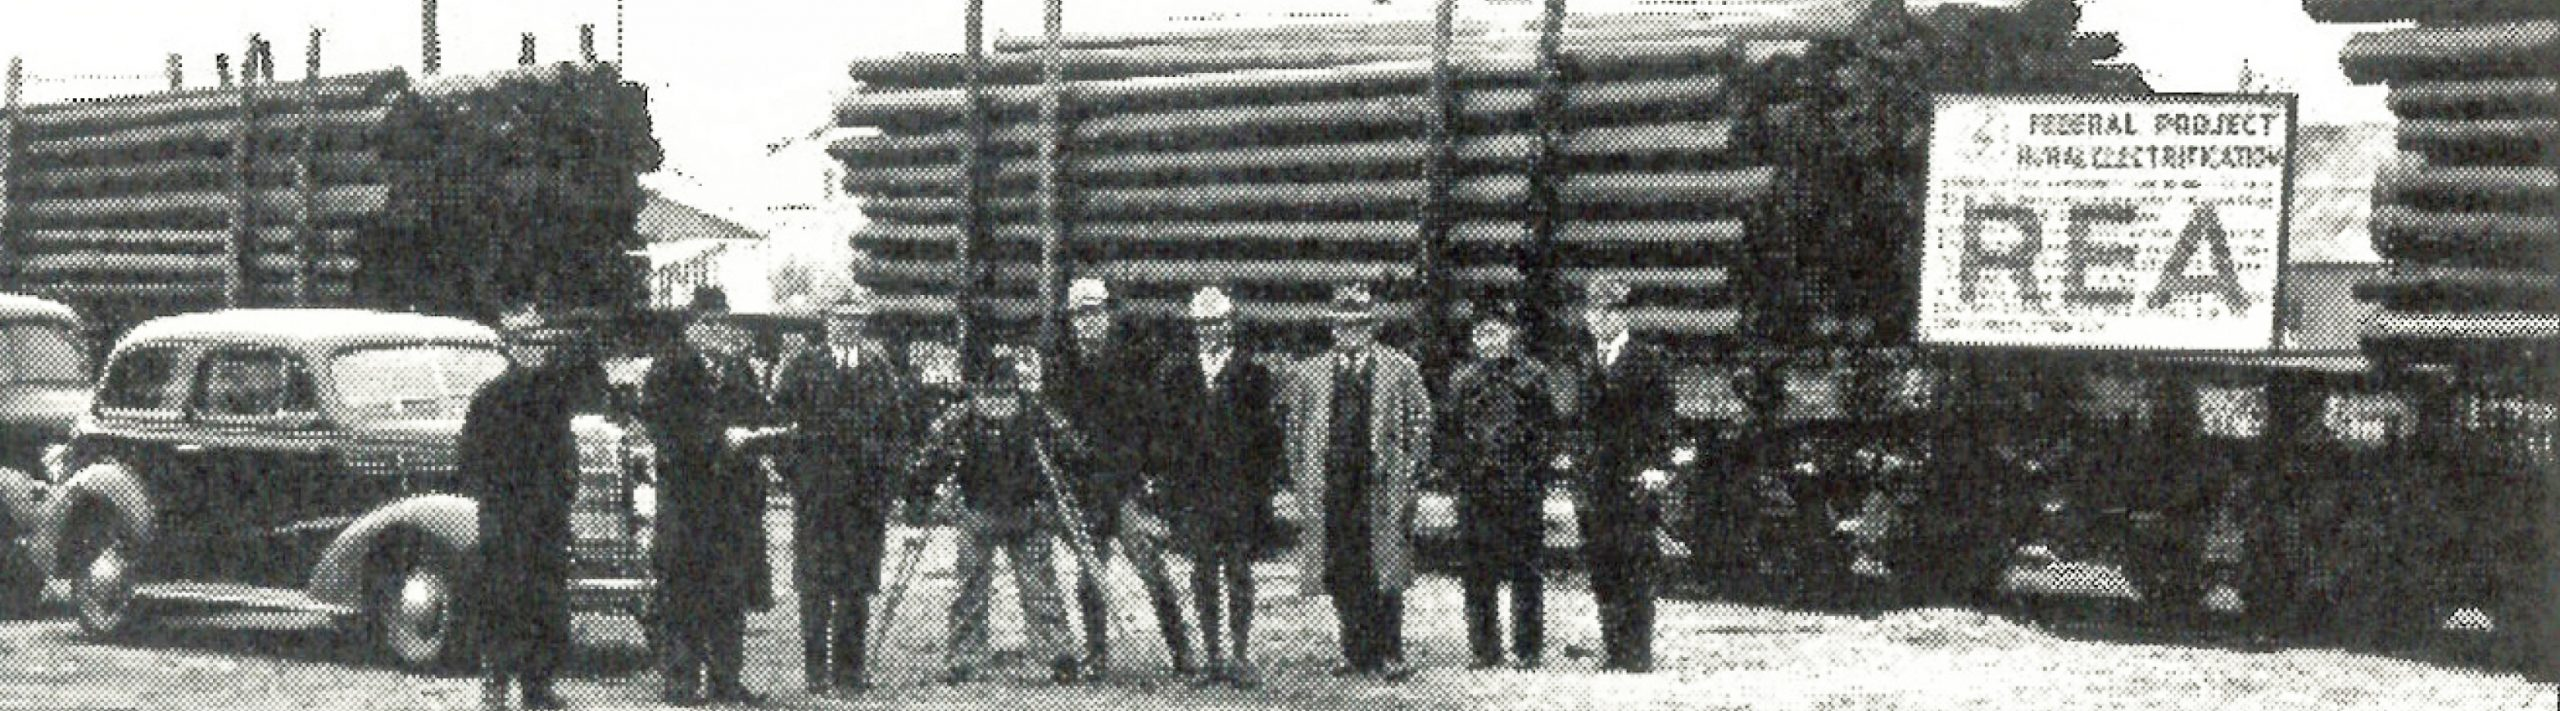 Old photo from the history of OEC. Workers in front of electrical poles